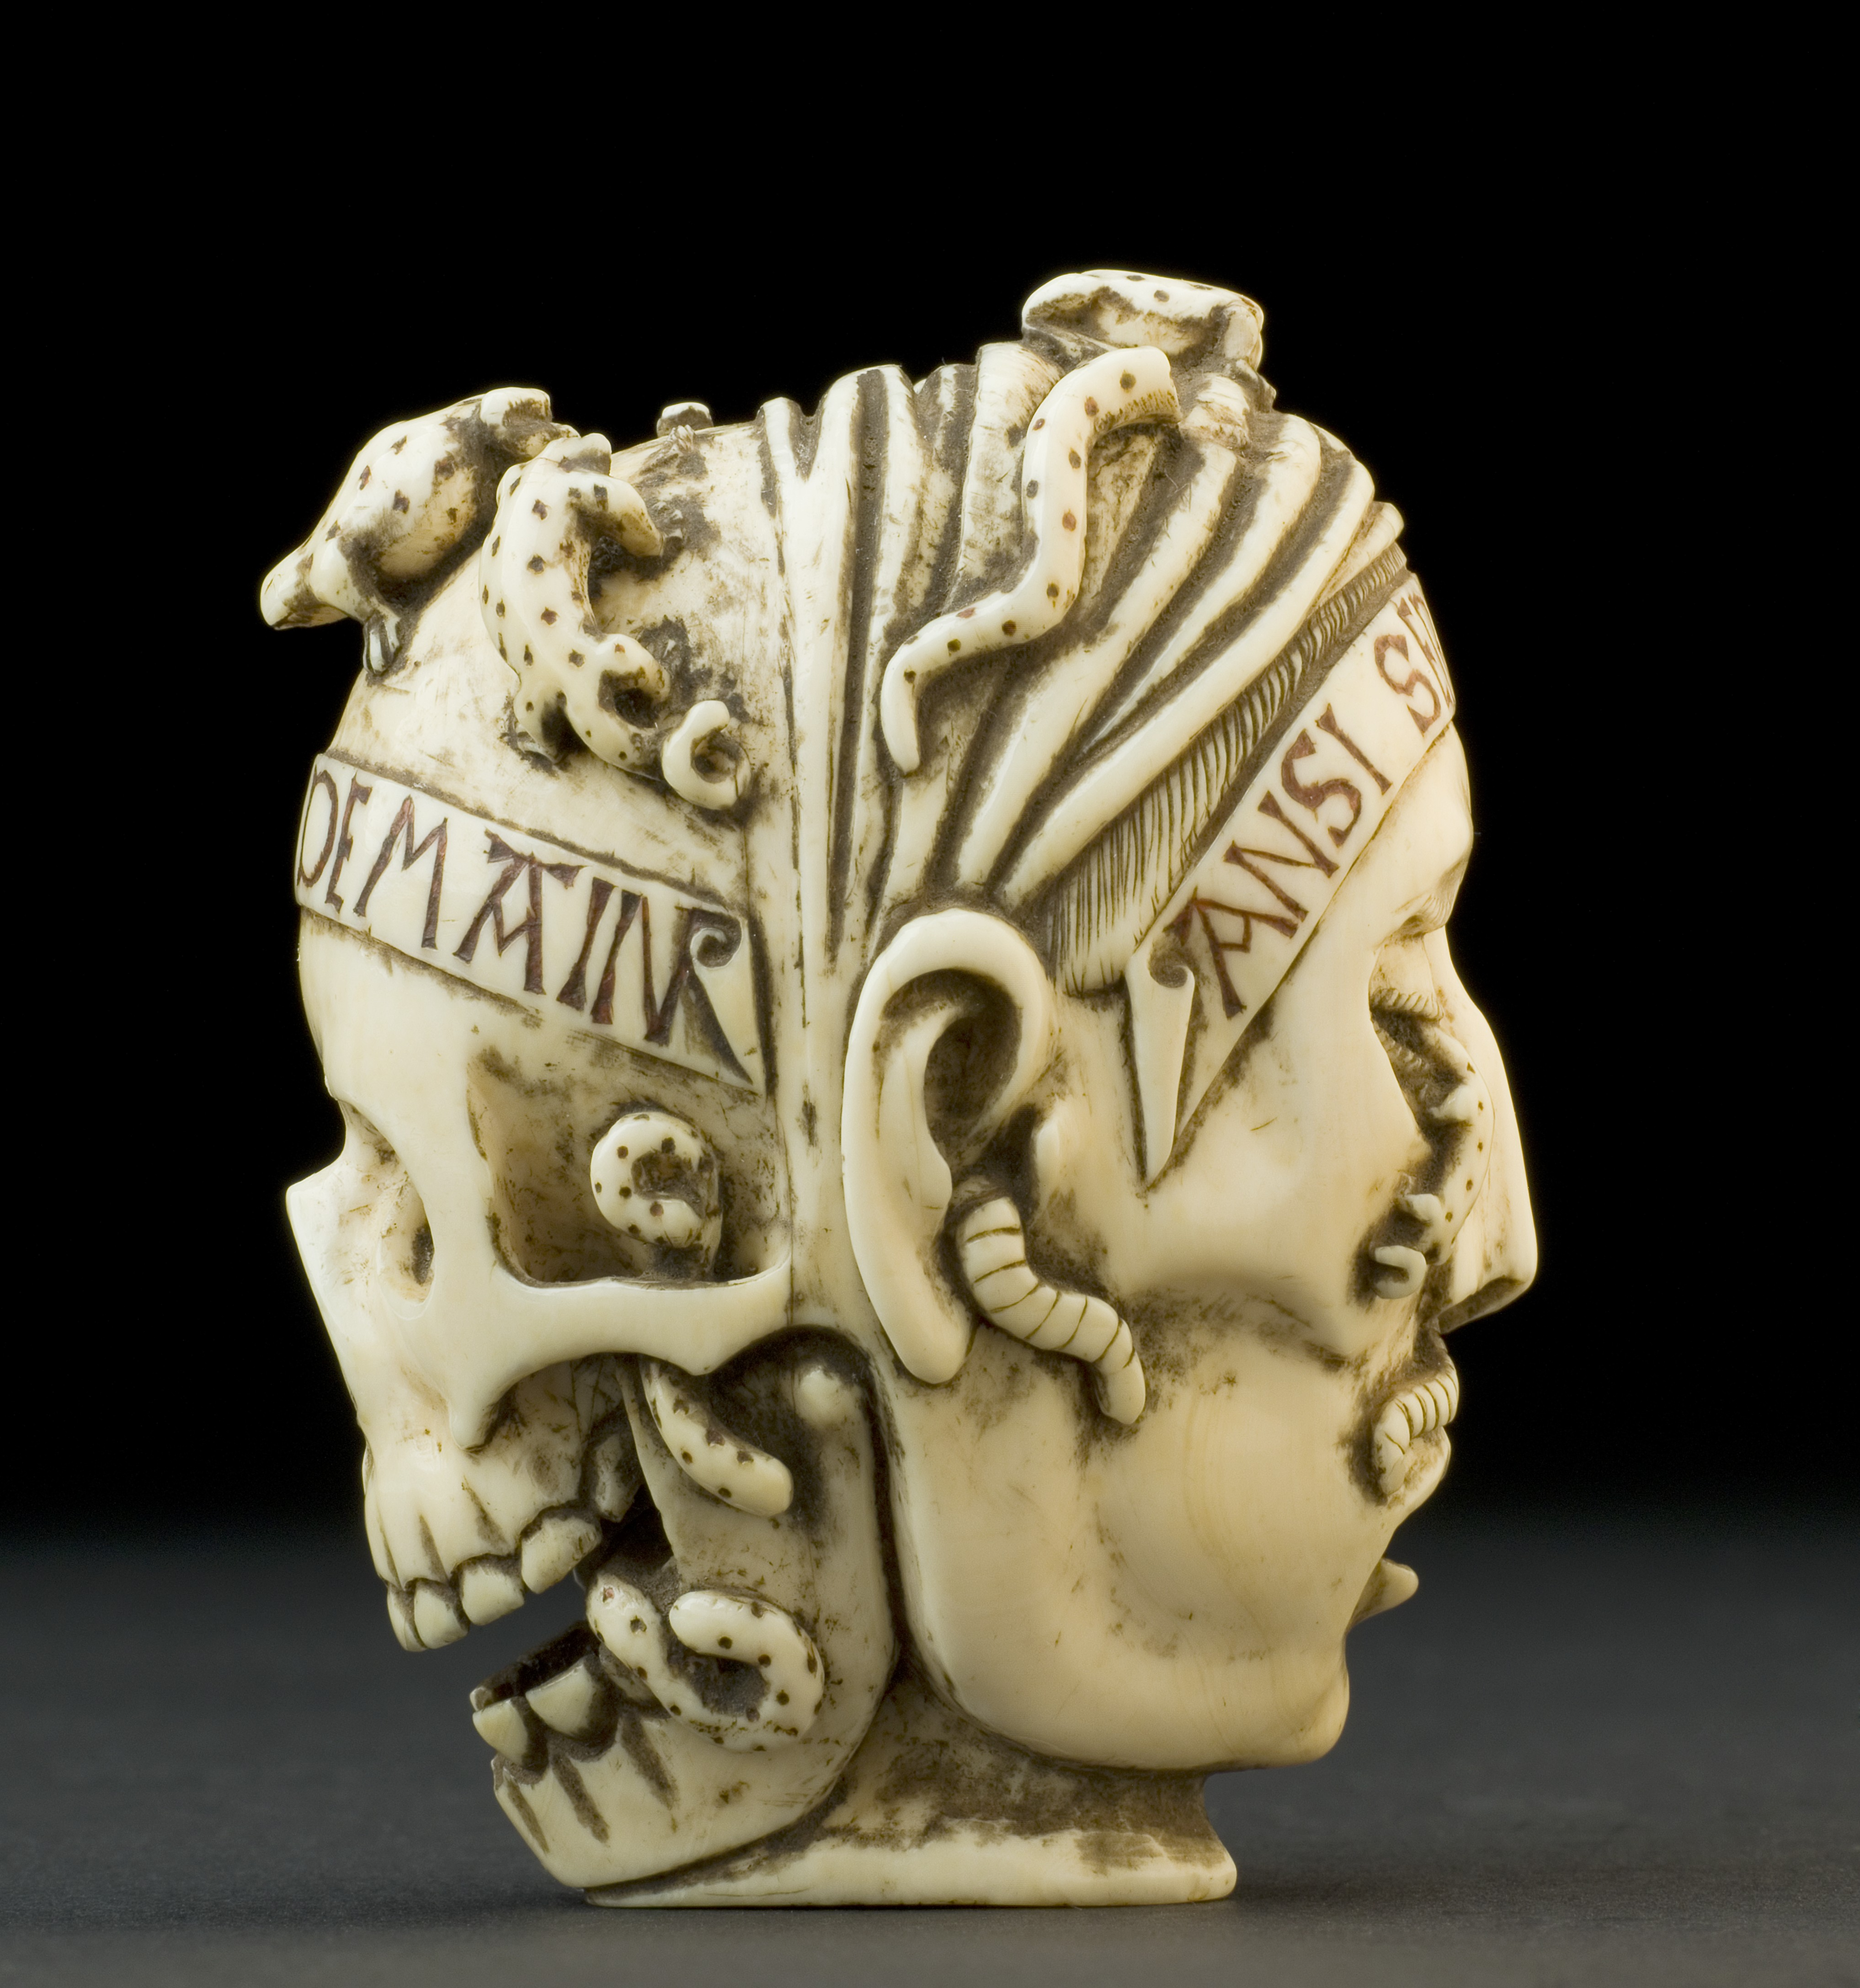 Ivory carving of the front of a skull on one side and the face of a